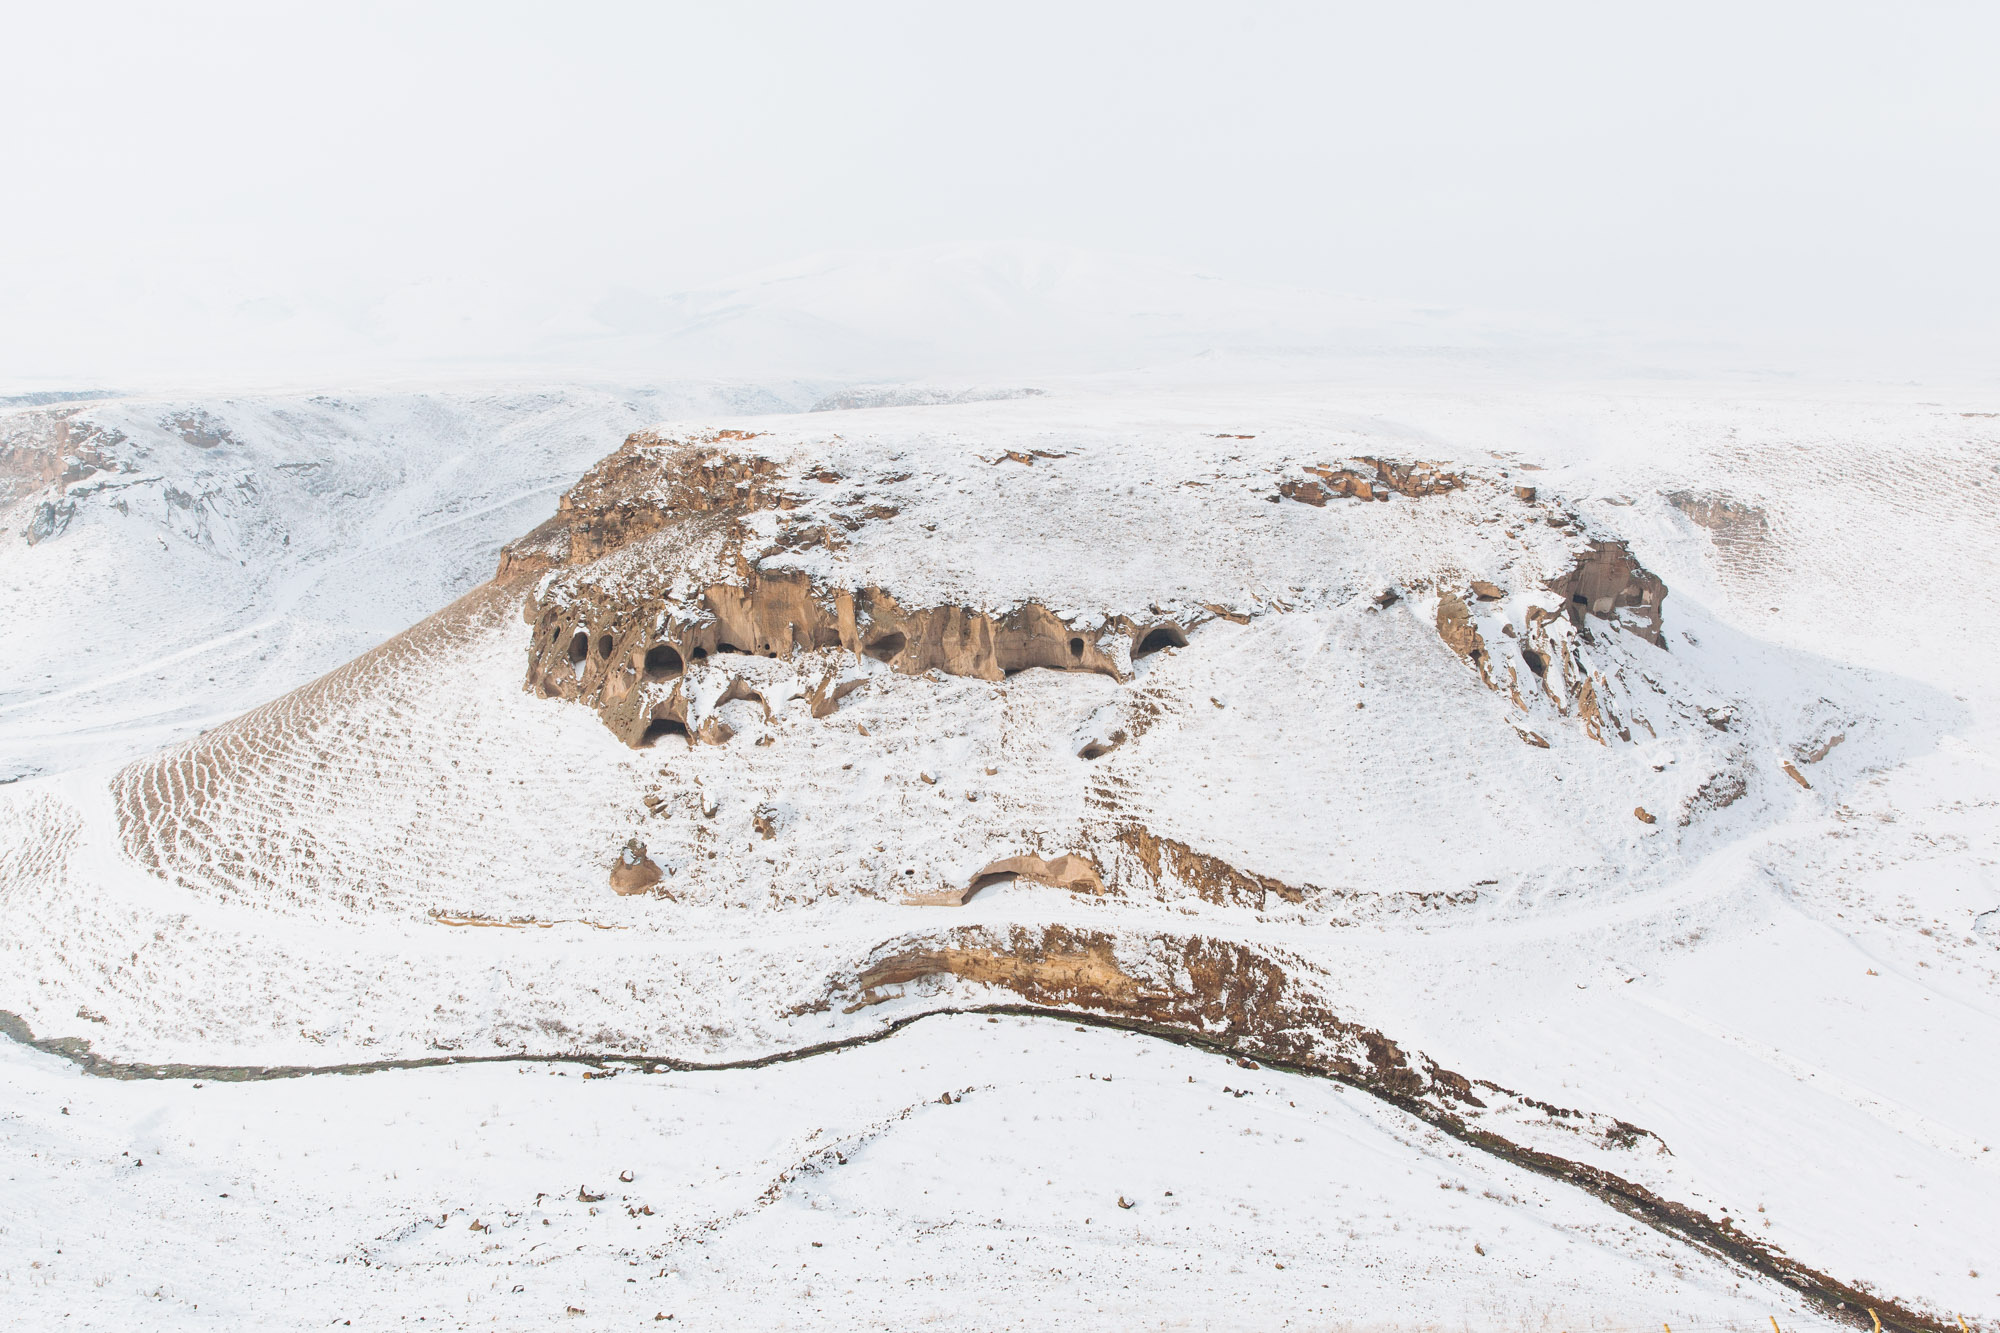 The cliffs and valleys all around the Ani plateau are riddled with hundreds of caves that served as dwellings, animal shelters and churches back in the day.